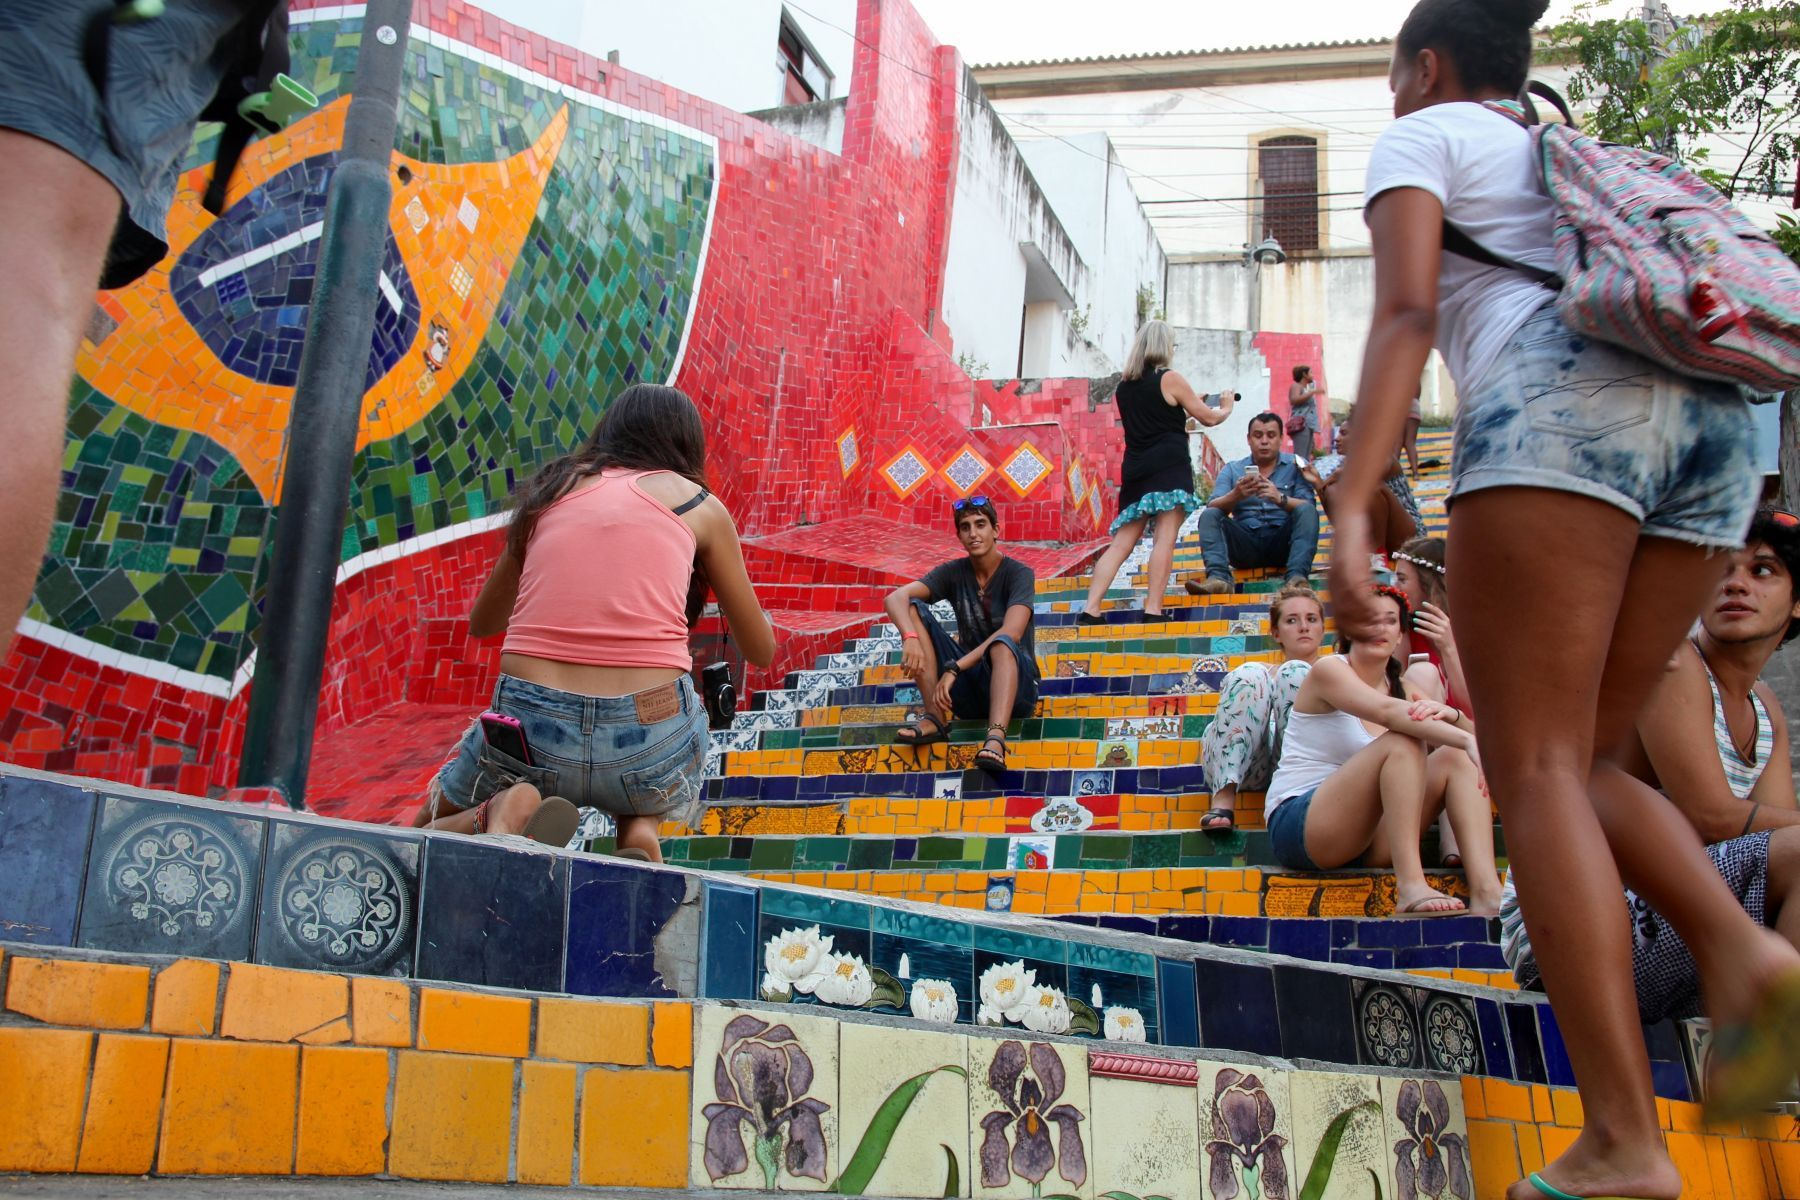 Travelers and locals alike snap photos on colorful steps of Escadaria Selarón.